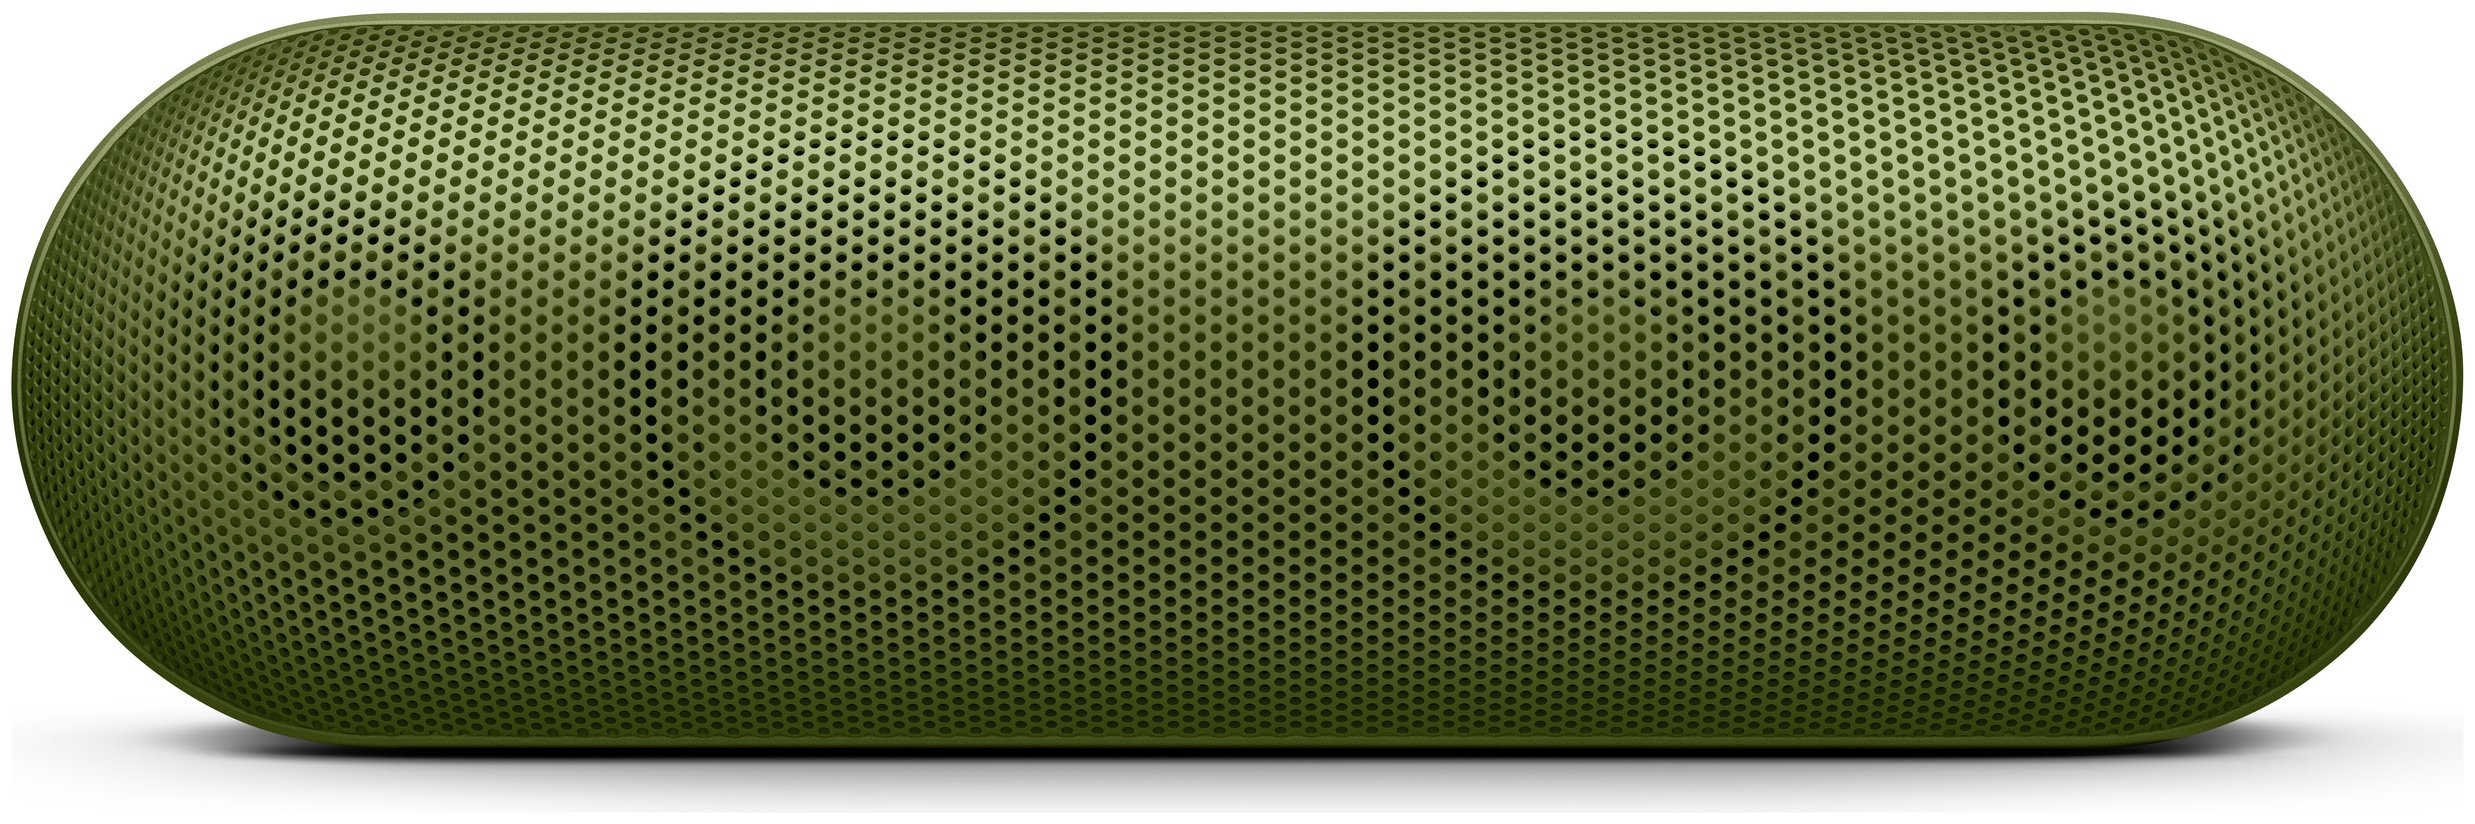 Beats Pill + Portable Wireless Speaker - Green